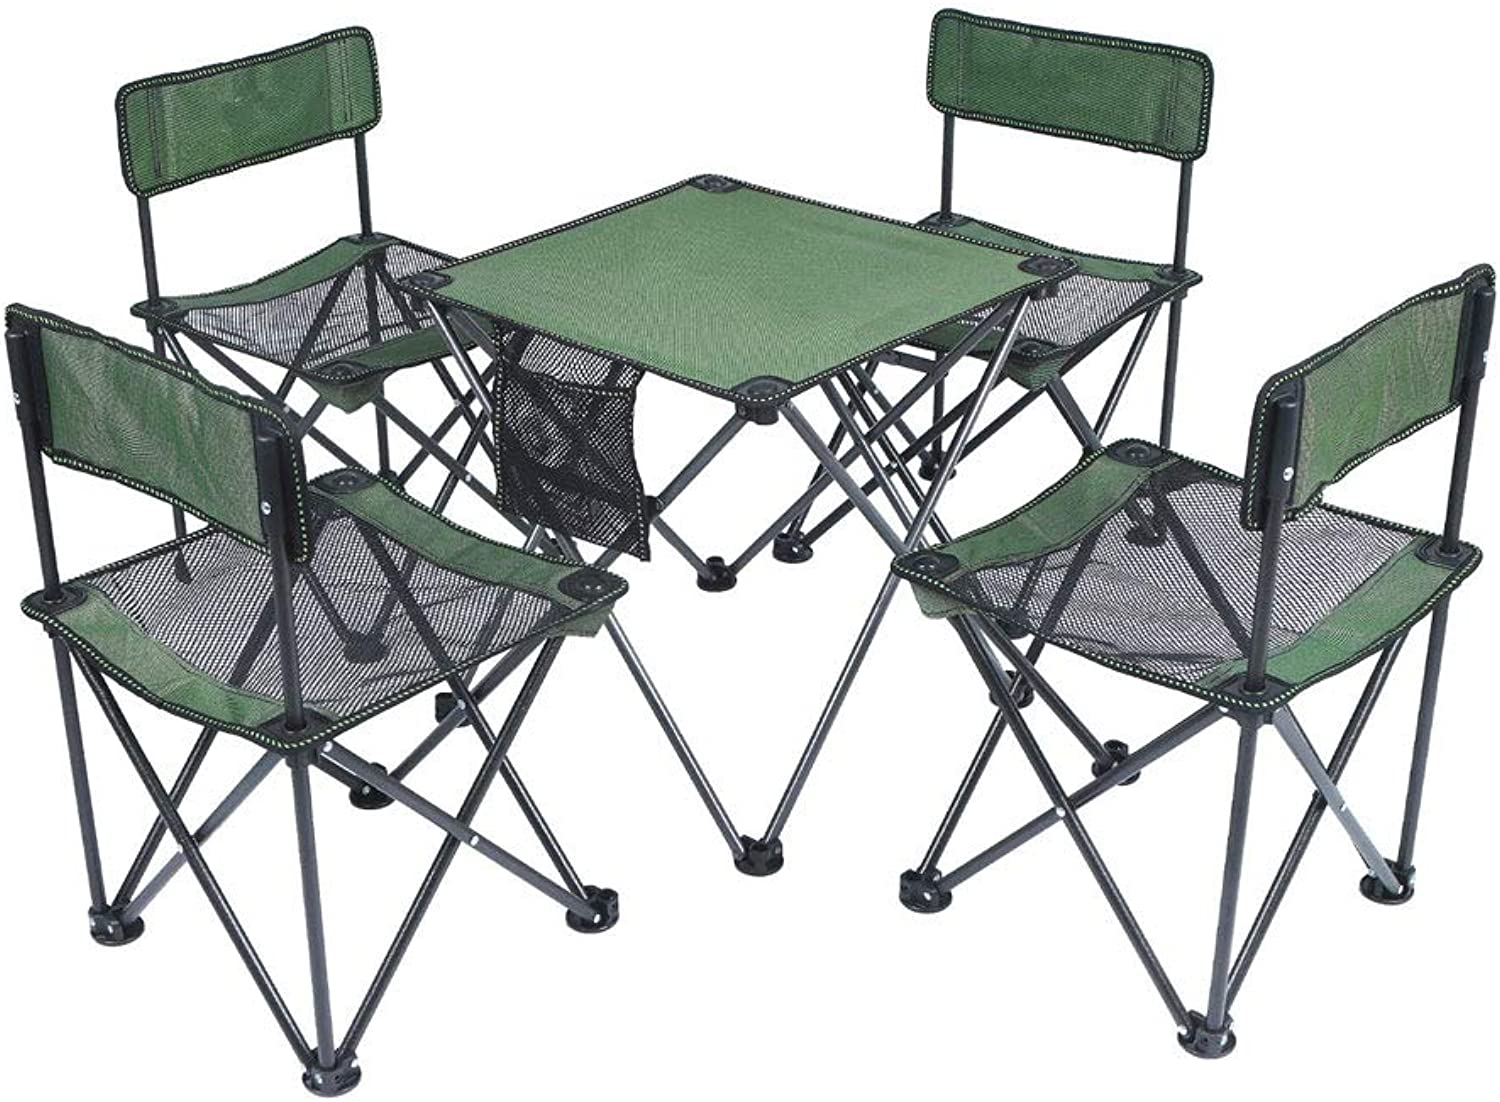 FH Outdoor Folding Table and Chairs, Camping Beach Self-Driving Tour Mini Portable Folding Table and Chair Set of Five, Green